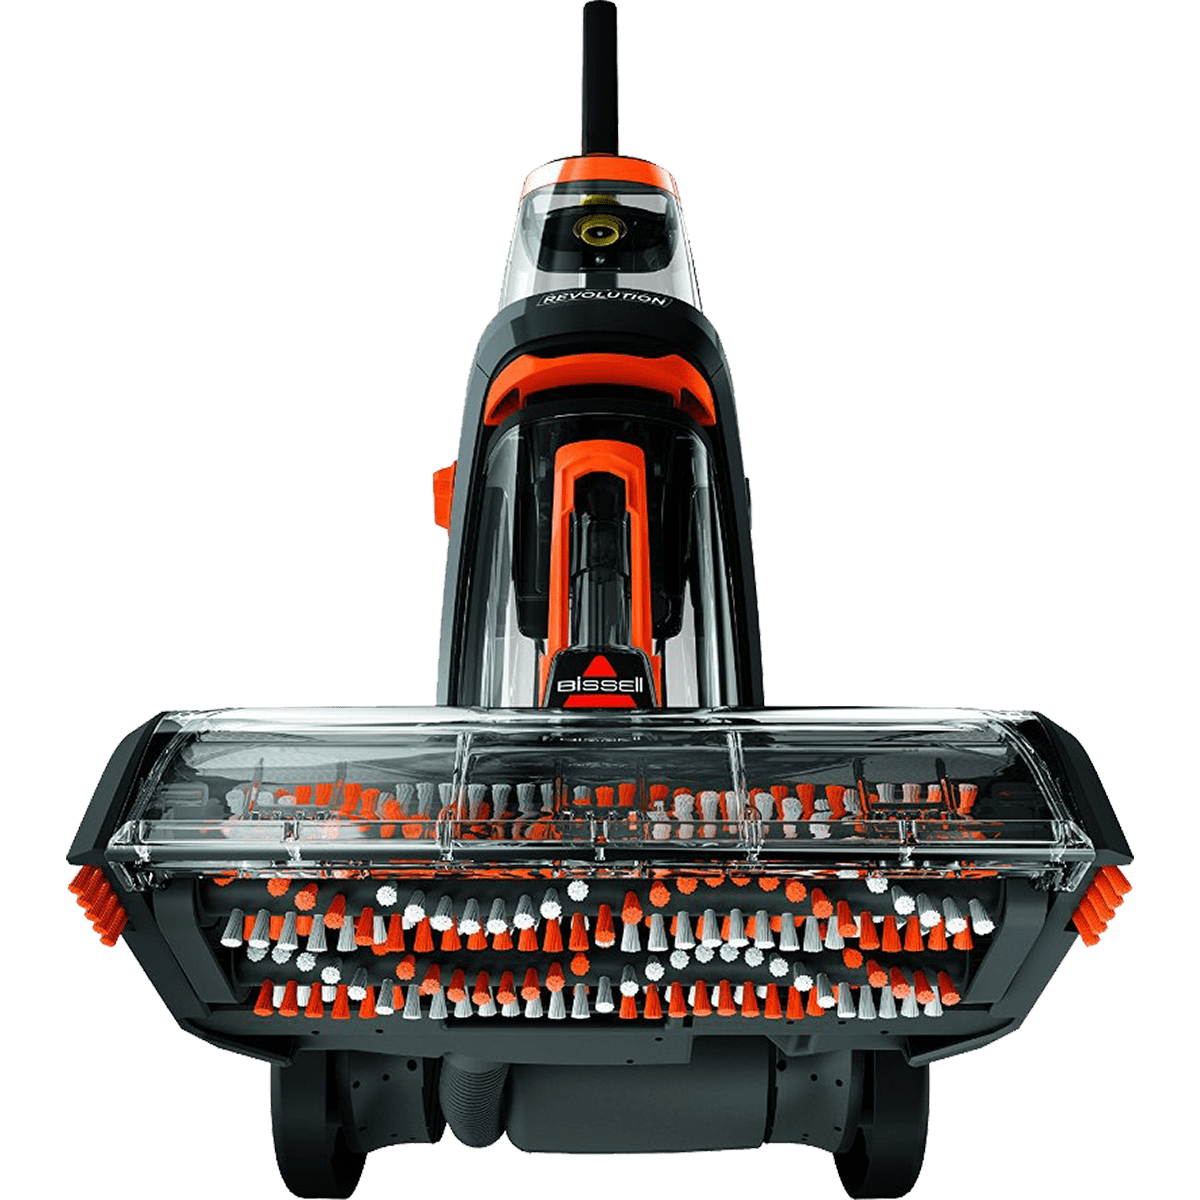 bissell proheat 2x pet